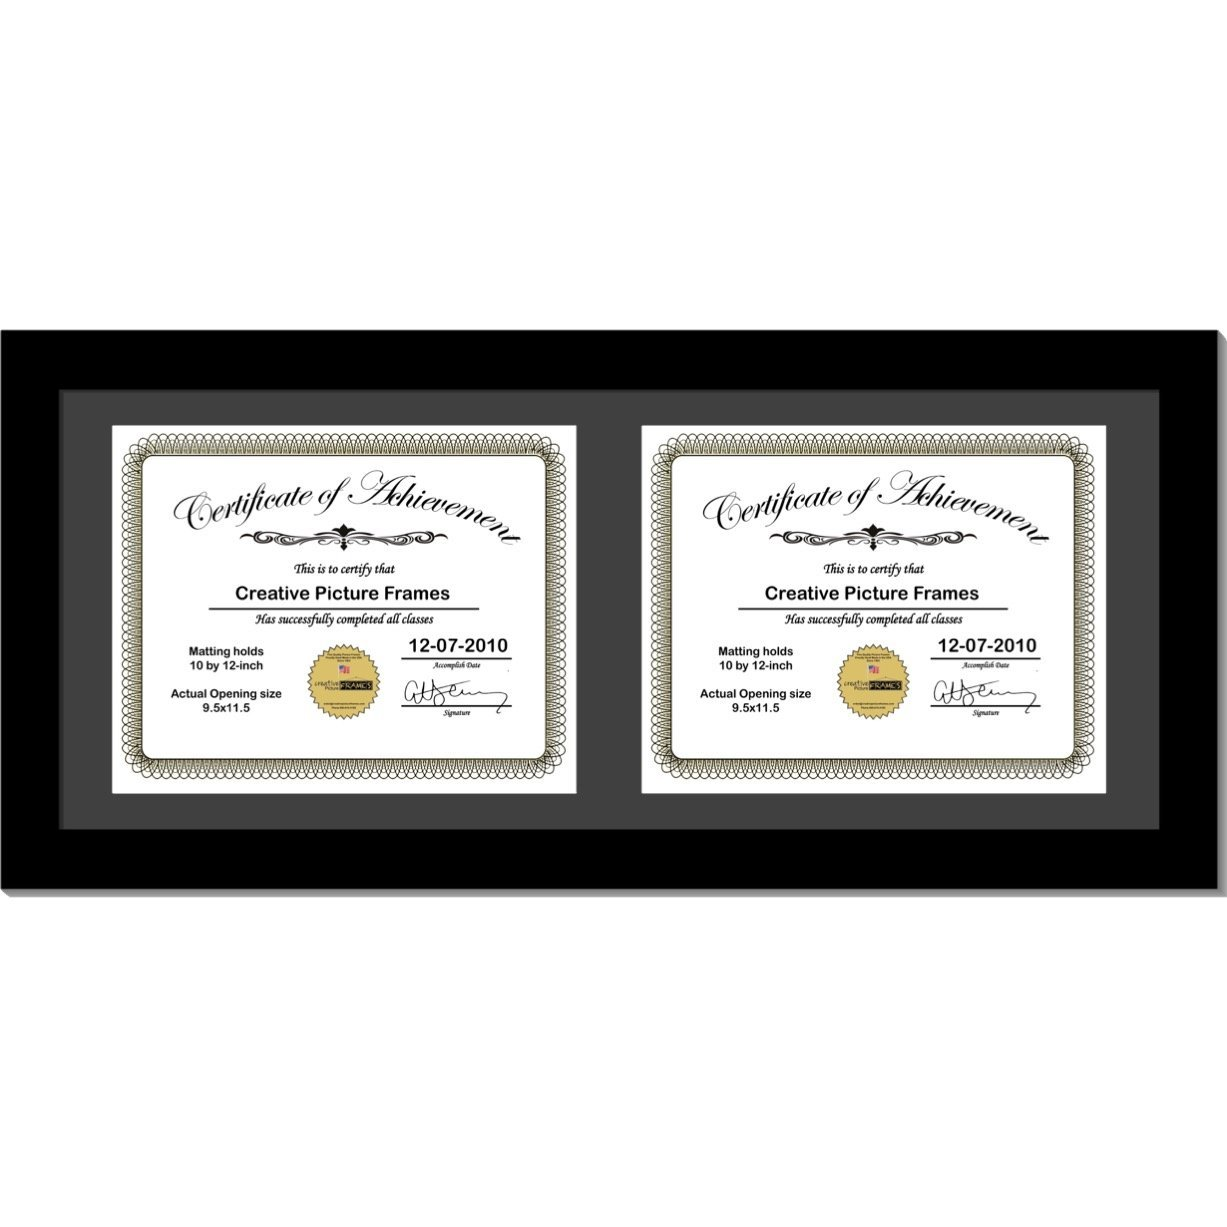 CreativePF [14x24bk-b] Black Horizontal Double Diploma Frame with 2 Opening Black Mat, Holds 2-10x12-inch Documents with Wall Hanger